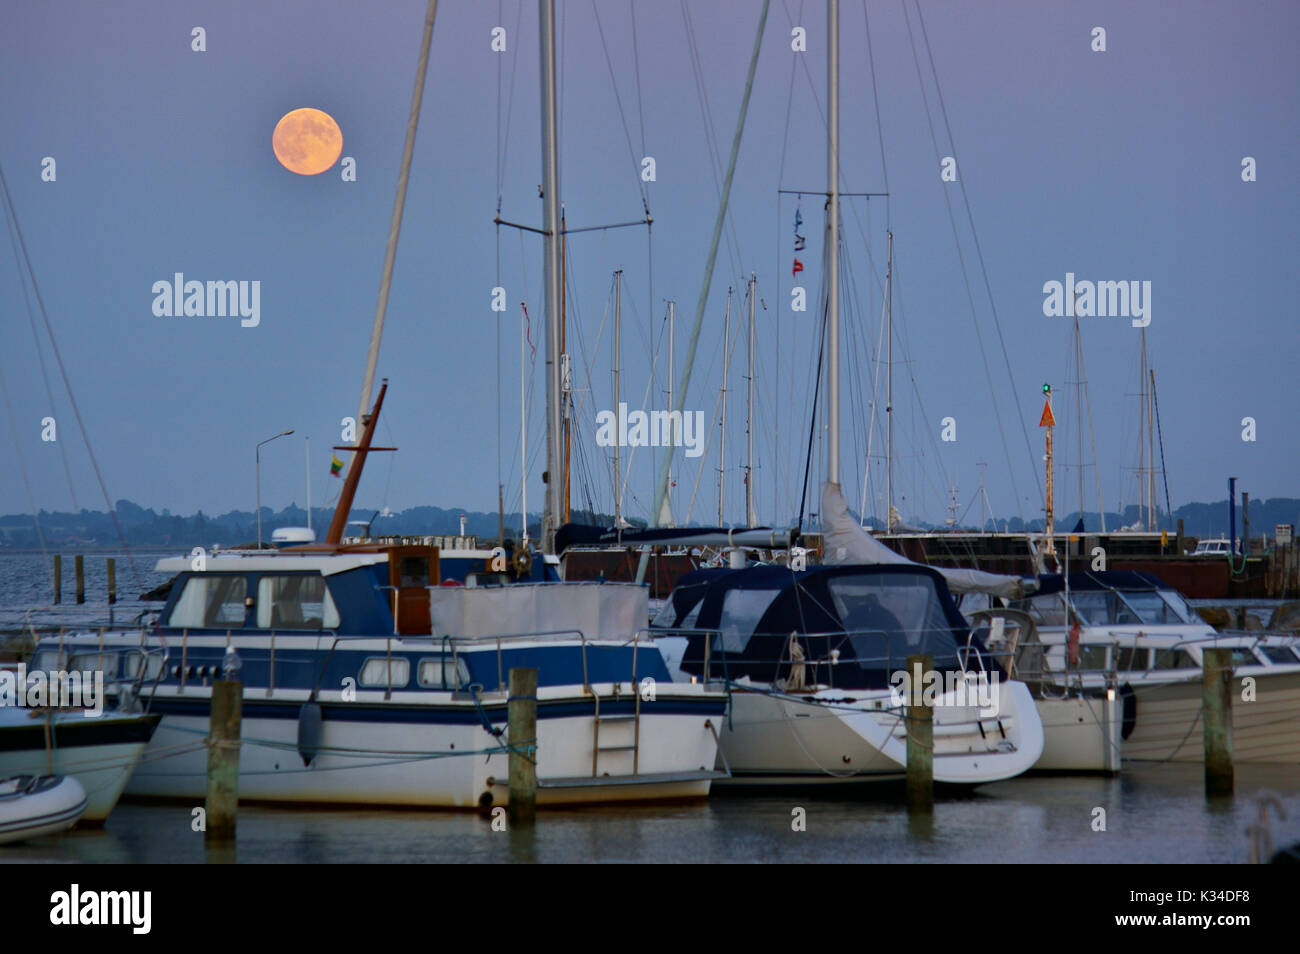 Yachts in a marina on the island of Ærø, Denmark at full moon - Stock Image